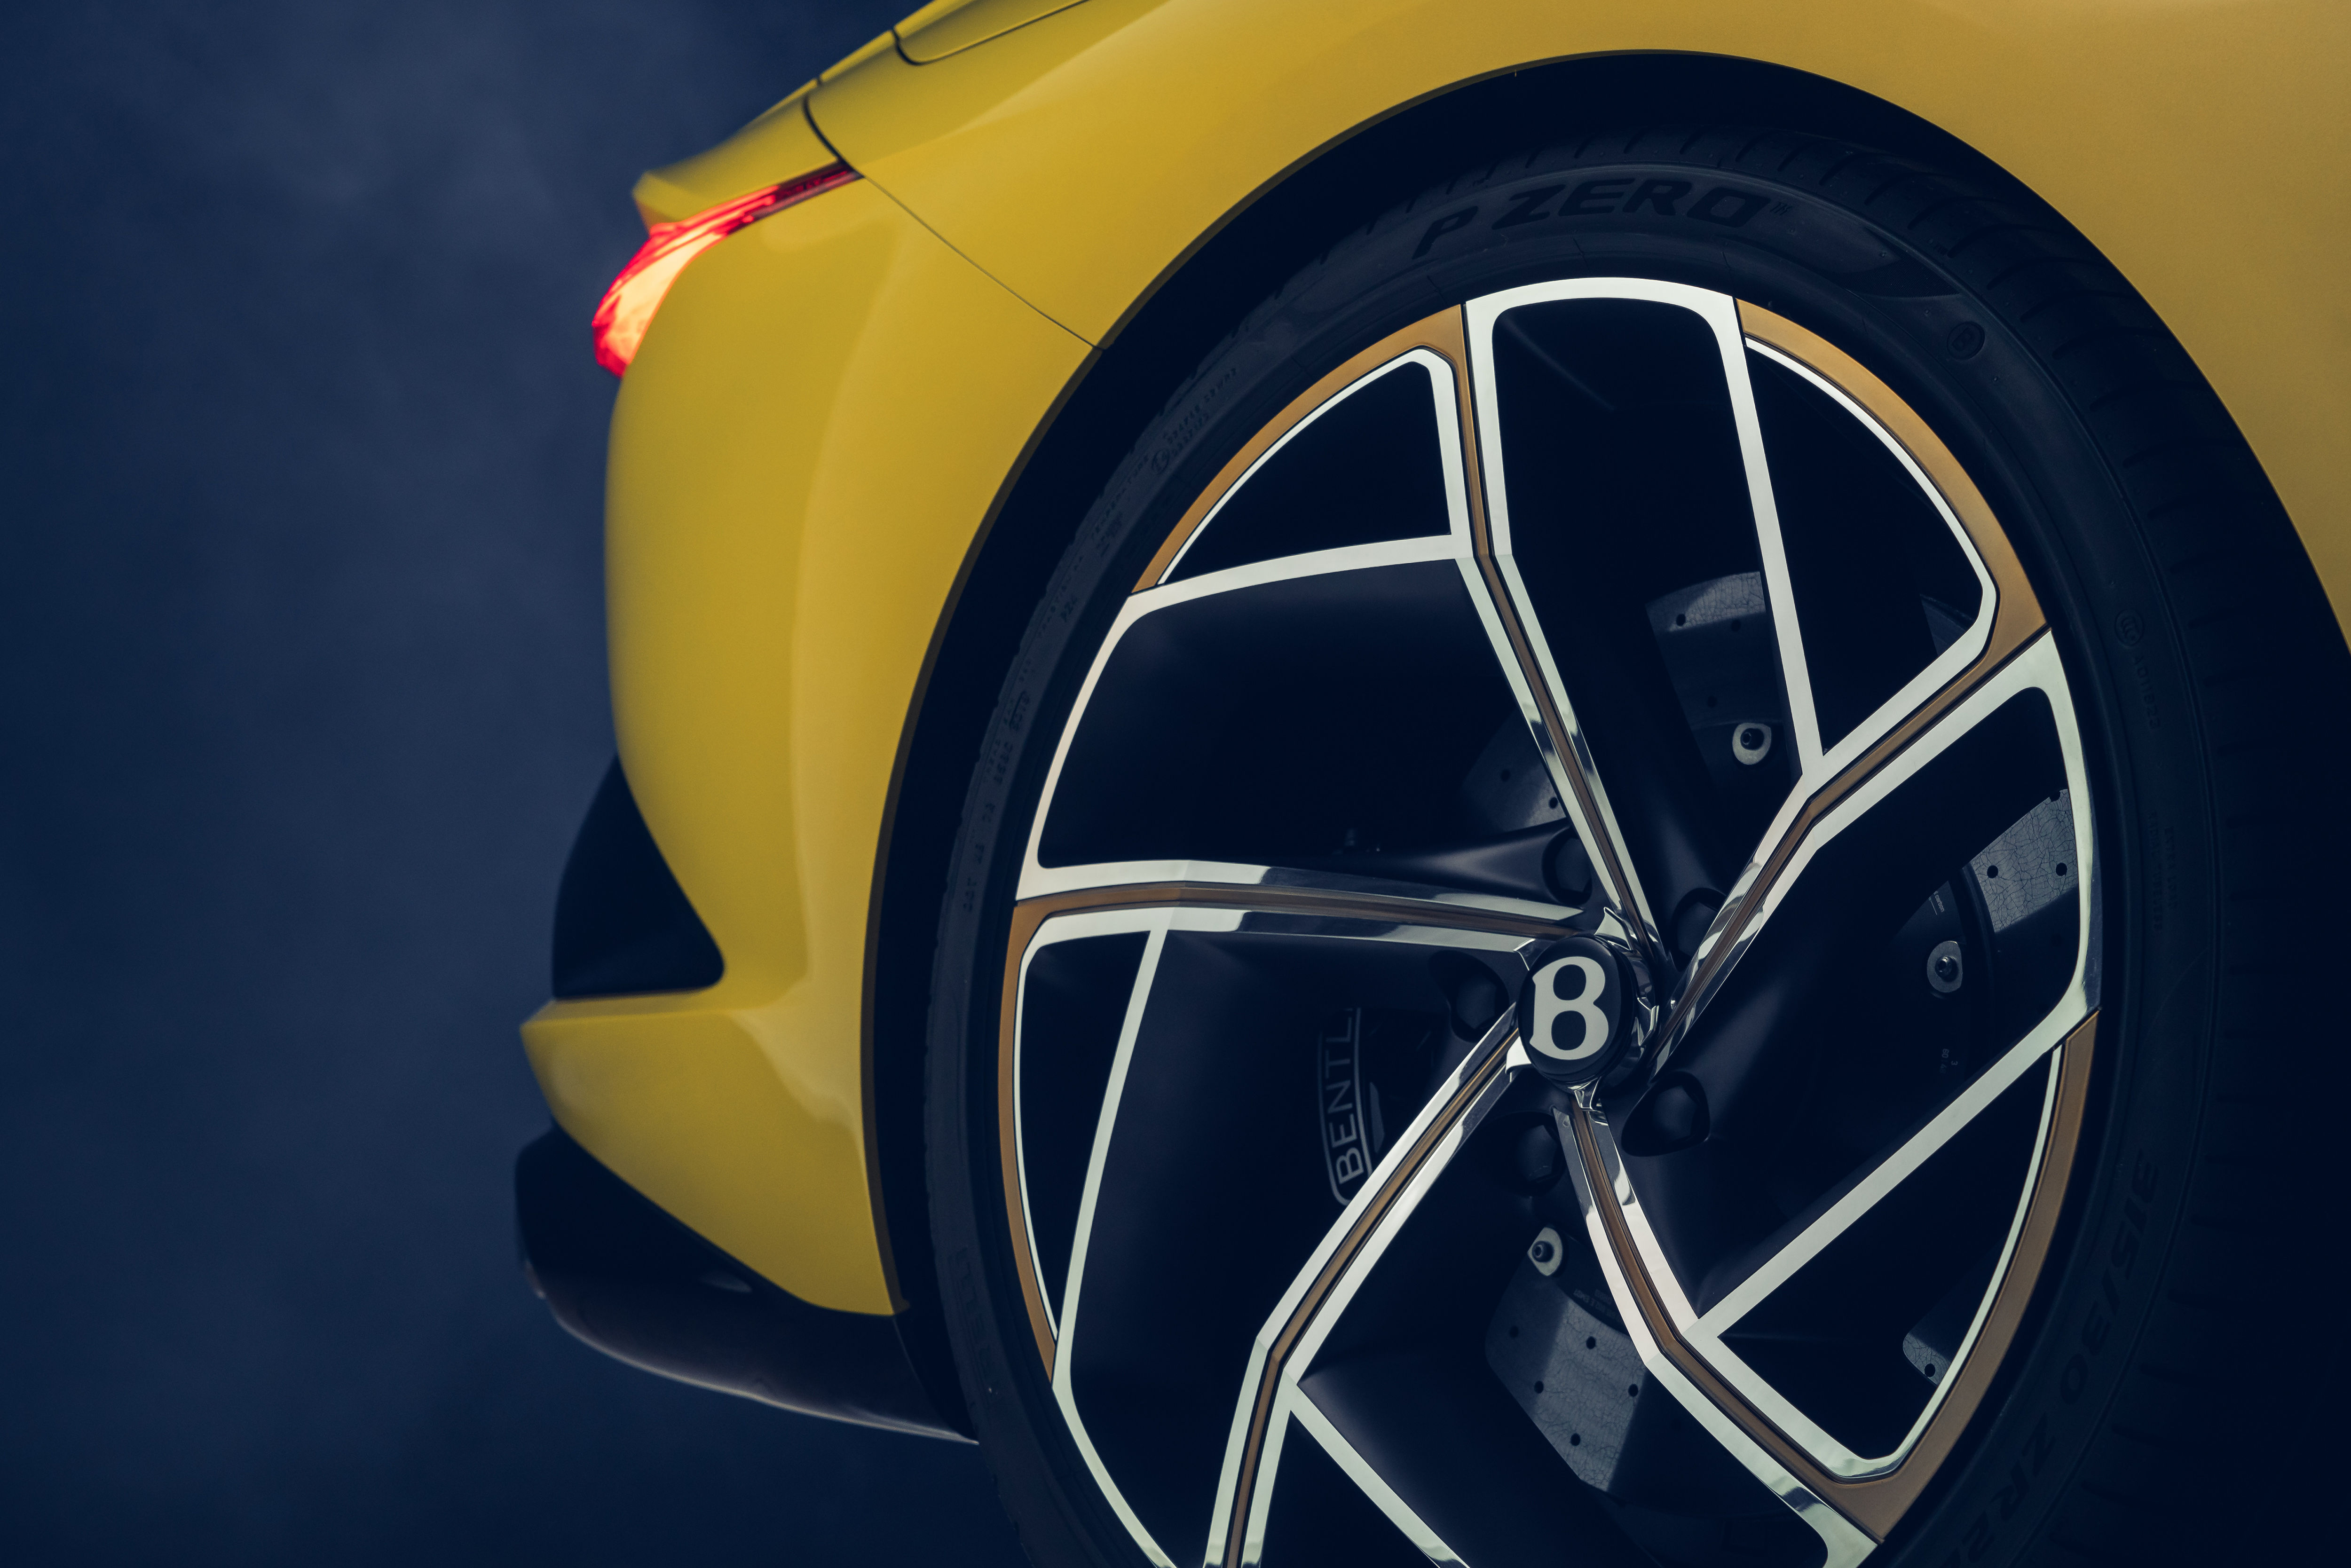 The Mulliner Bacalar has been differentiated from the Continental GT convertible by a rear track that measures 1,684 mm and some 22-inch wheels.